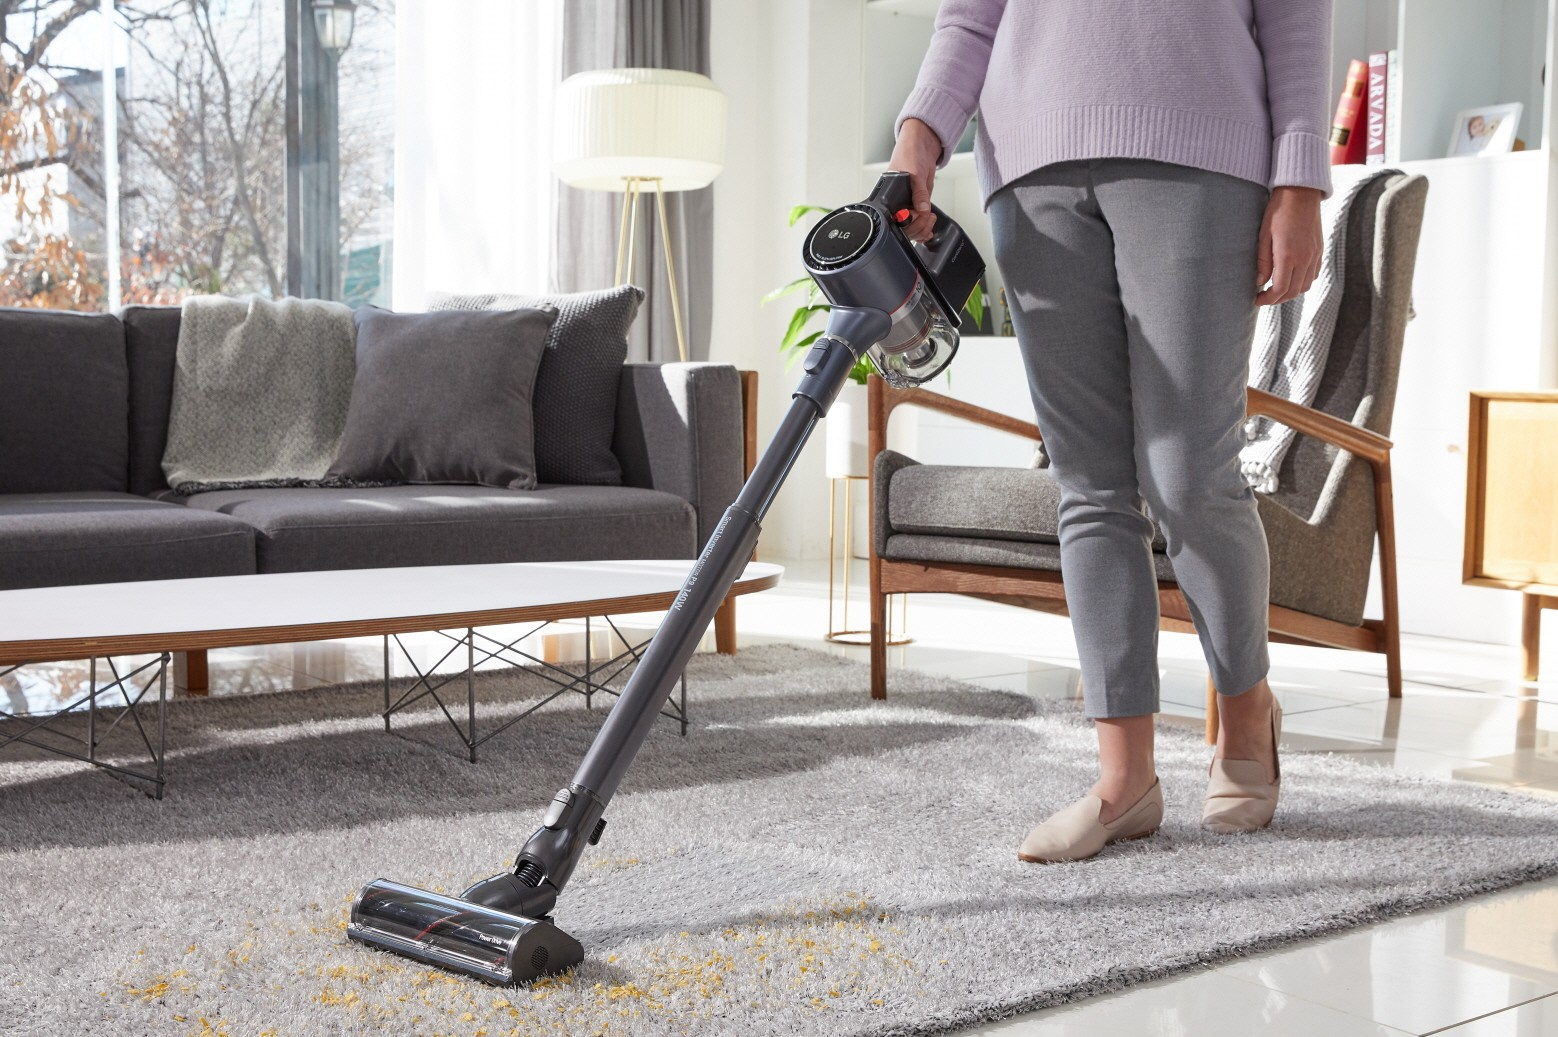 A woman vacuuming her living room carpet with LG CordZeroThinQ A9 Stick Vacuum, which is absorbing dust from the carpet.